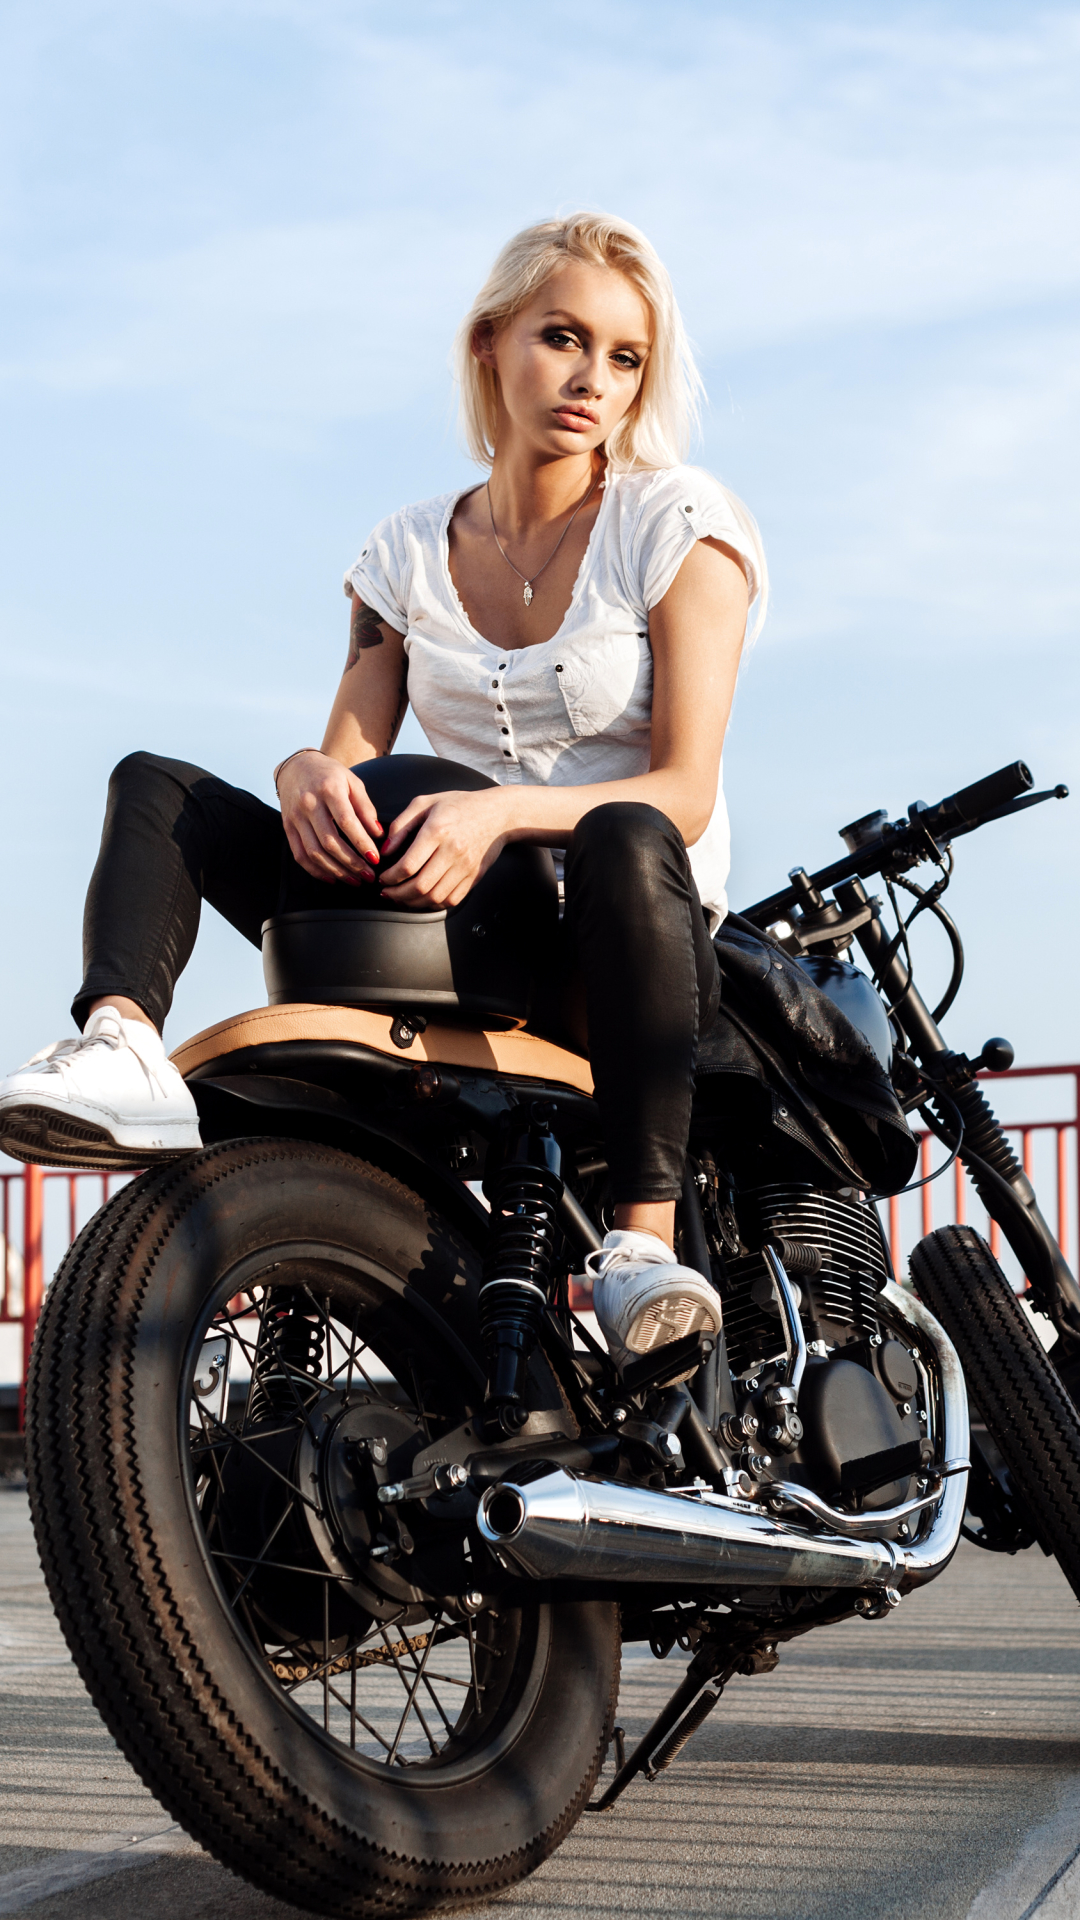 Womengirls motorcycles 720x1280 wallpaper id 693346 mobile abyss women girls motorcycles 720x1280 mobile wallpaper voltagebd Images